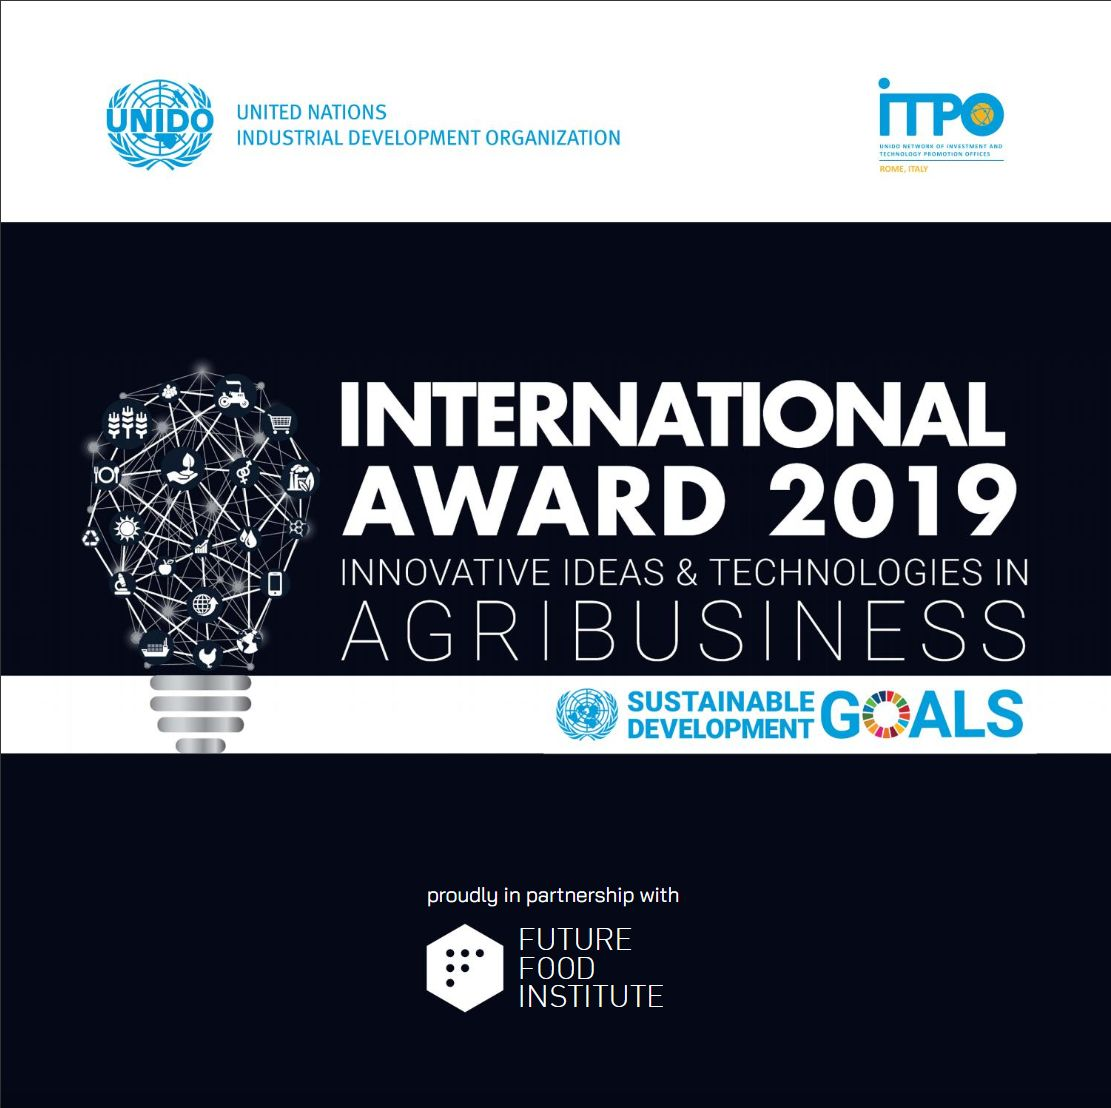 The Official publication of International Award 2019 is online!